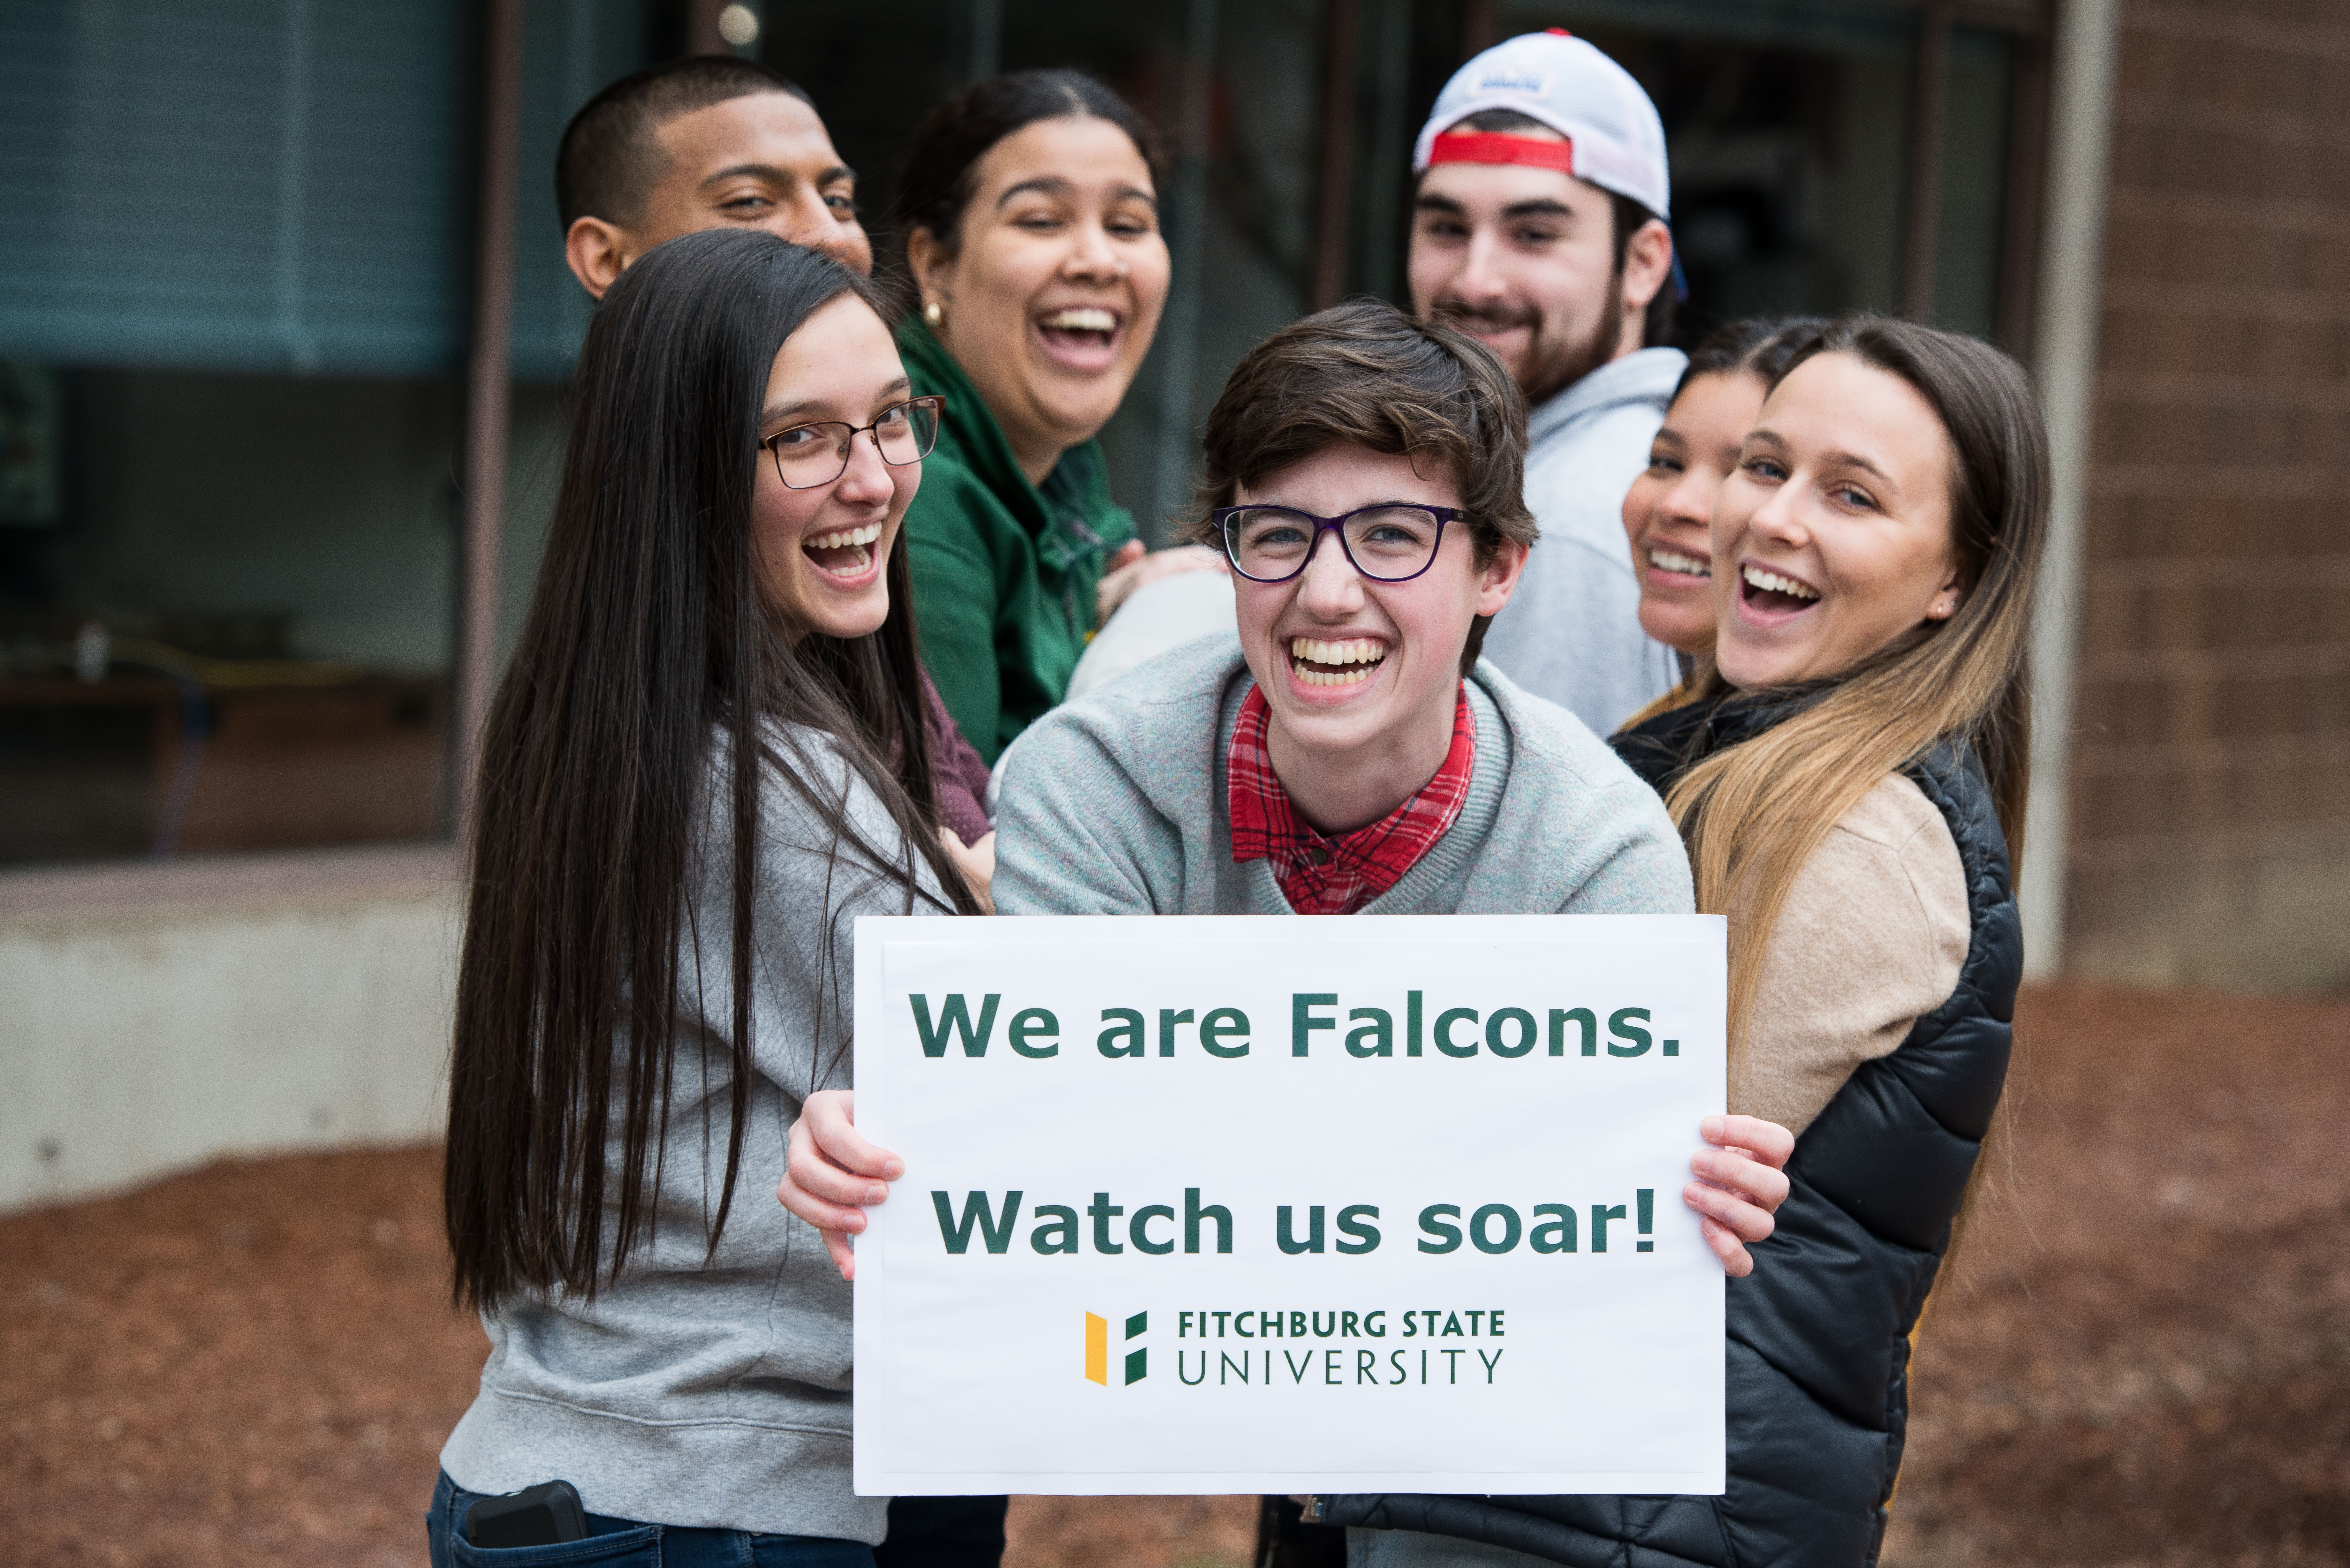 We are Falcons. Watch us soar.